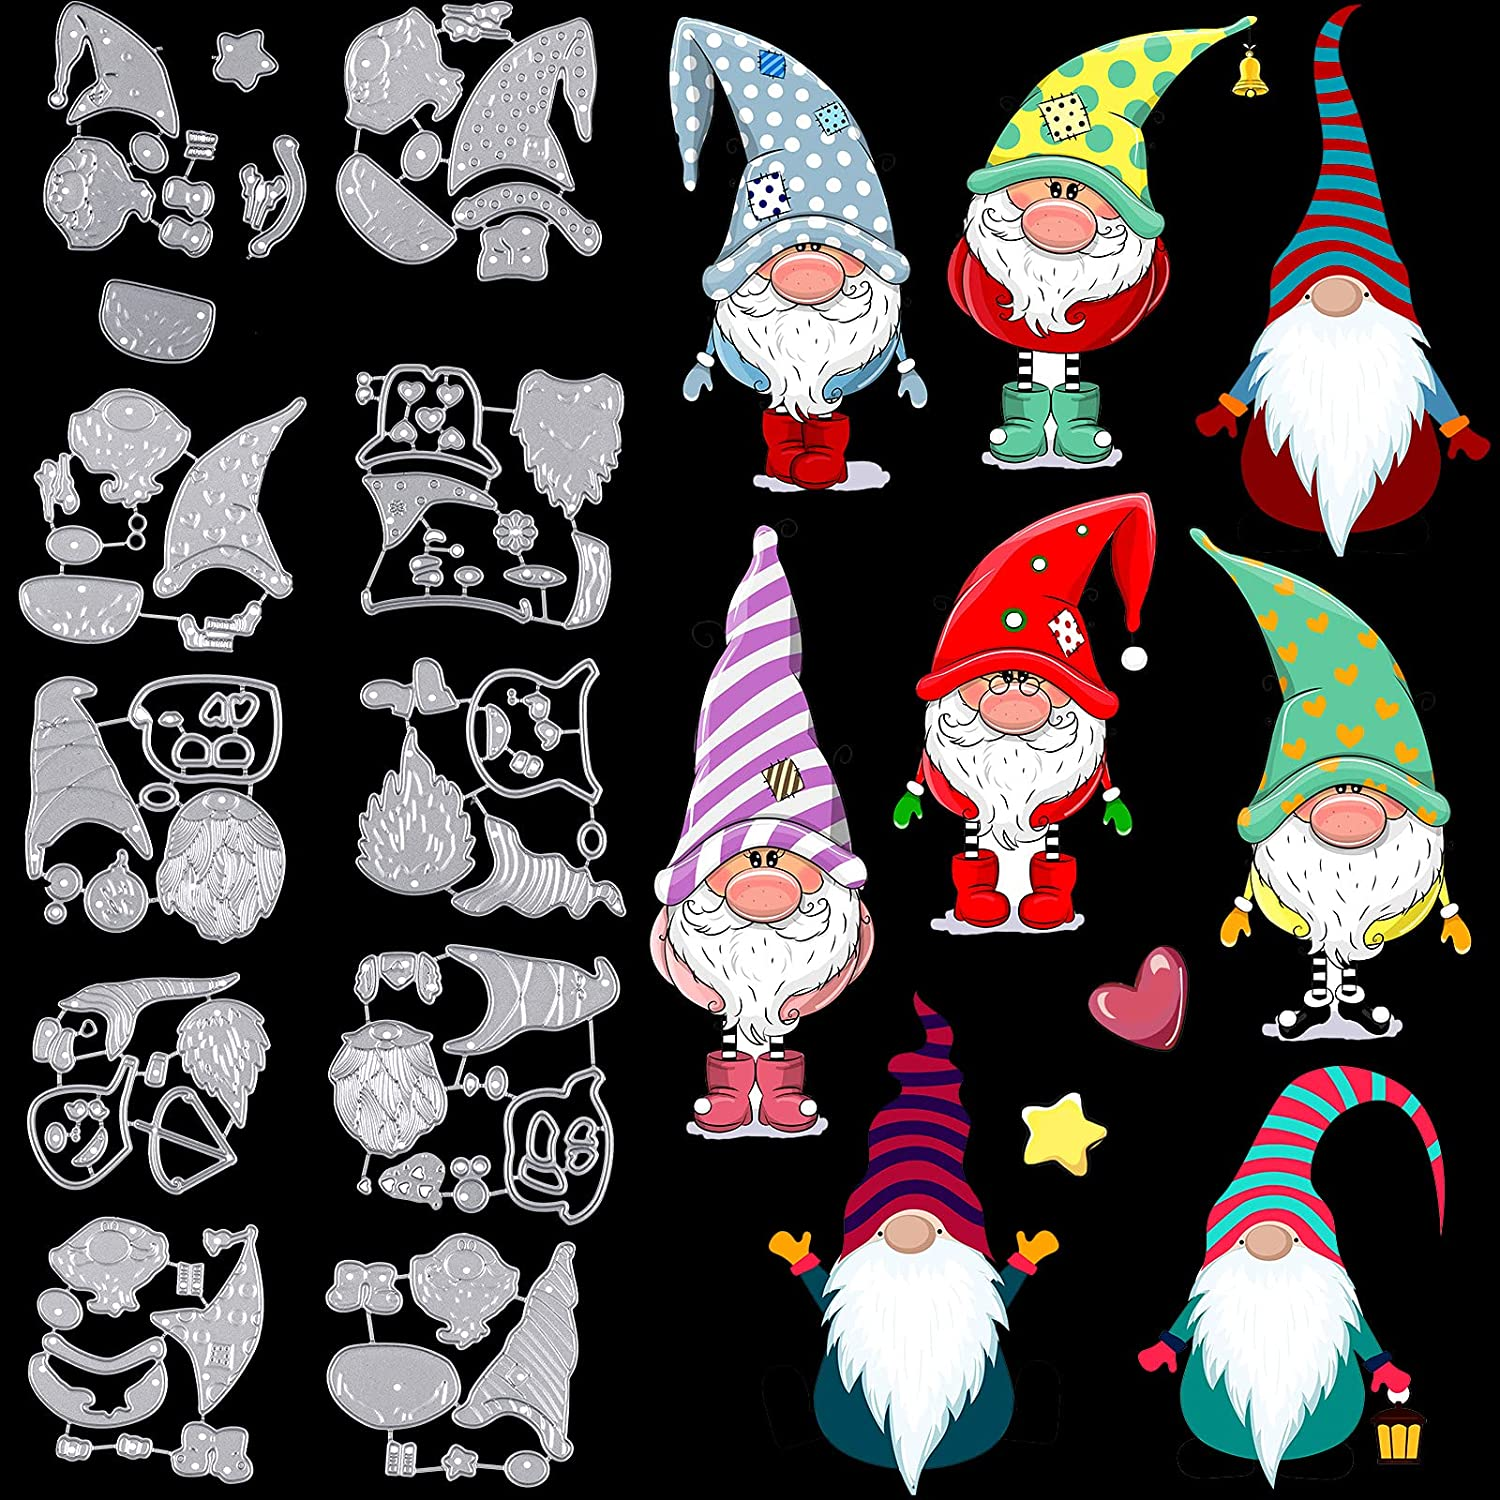 10 Pieces Gnome Cutting Dies Emb Cheap El Paso Mall SALE Start Metal Steel Carbon